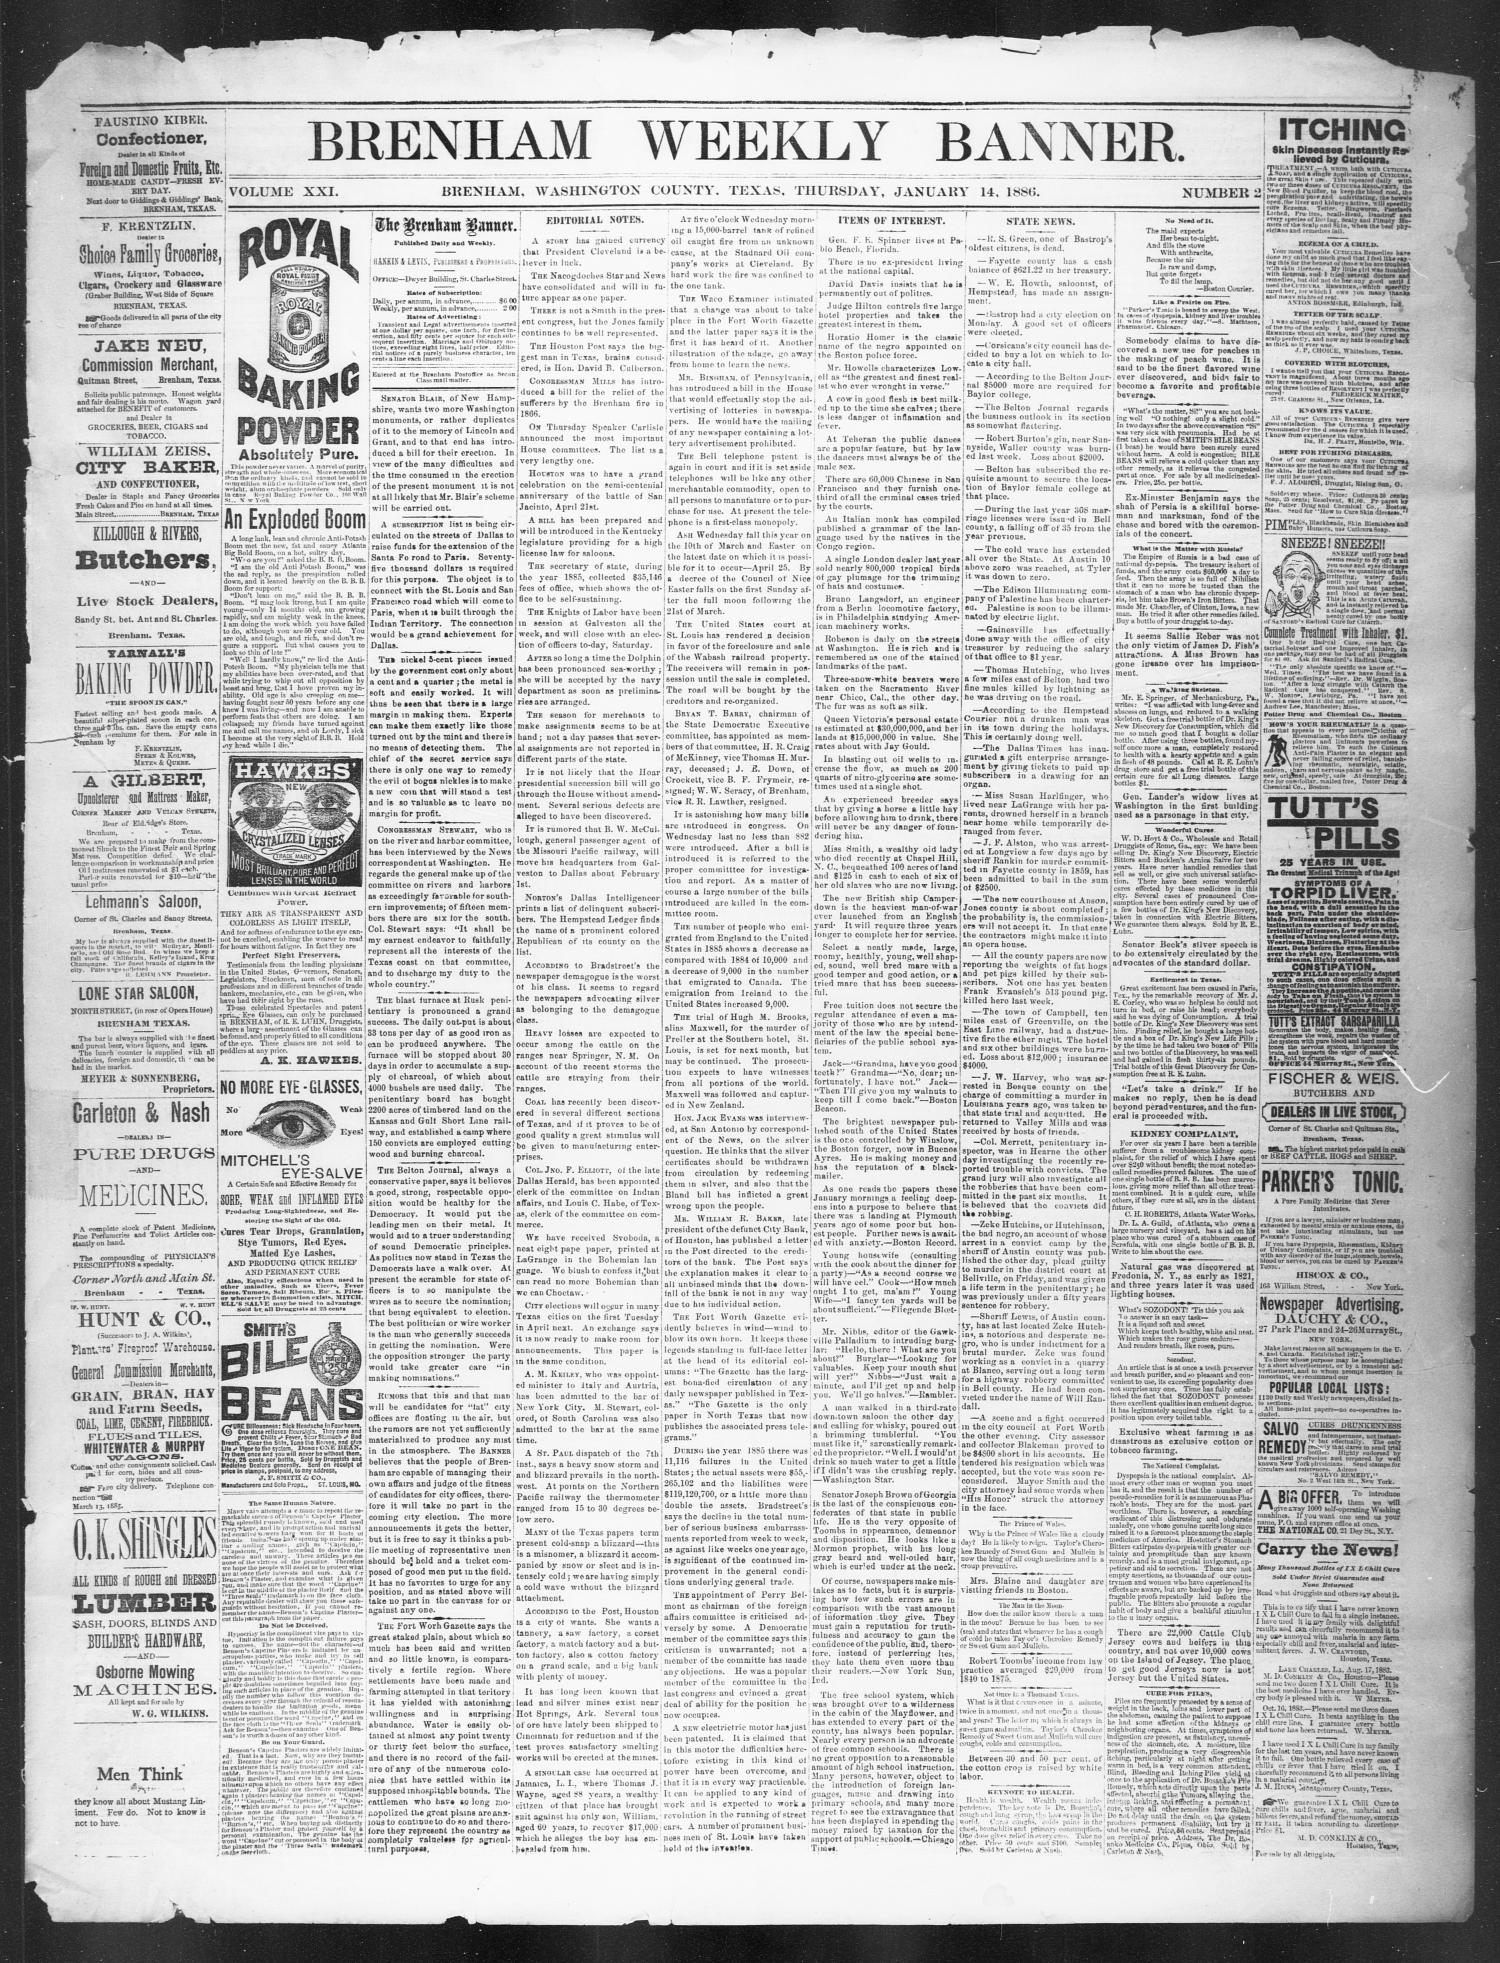 Brenham Weekly Banner. (Brenham, Tex.), Vol. 21, No. 2, Ed. 1, Thursday, January 14, 1886                                                                                                      [Sequence #]: 1 of 4